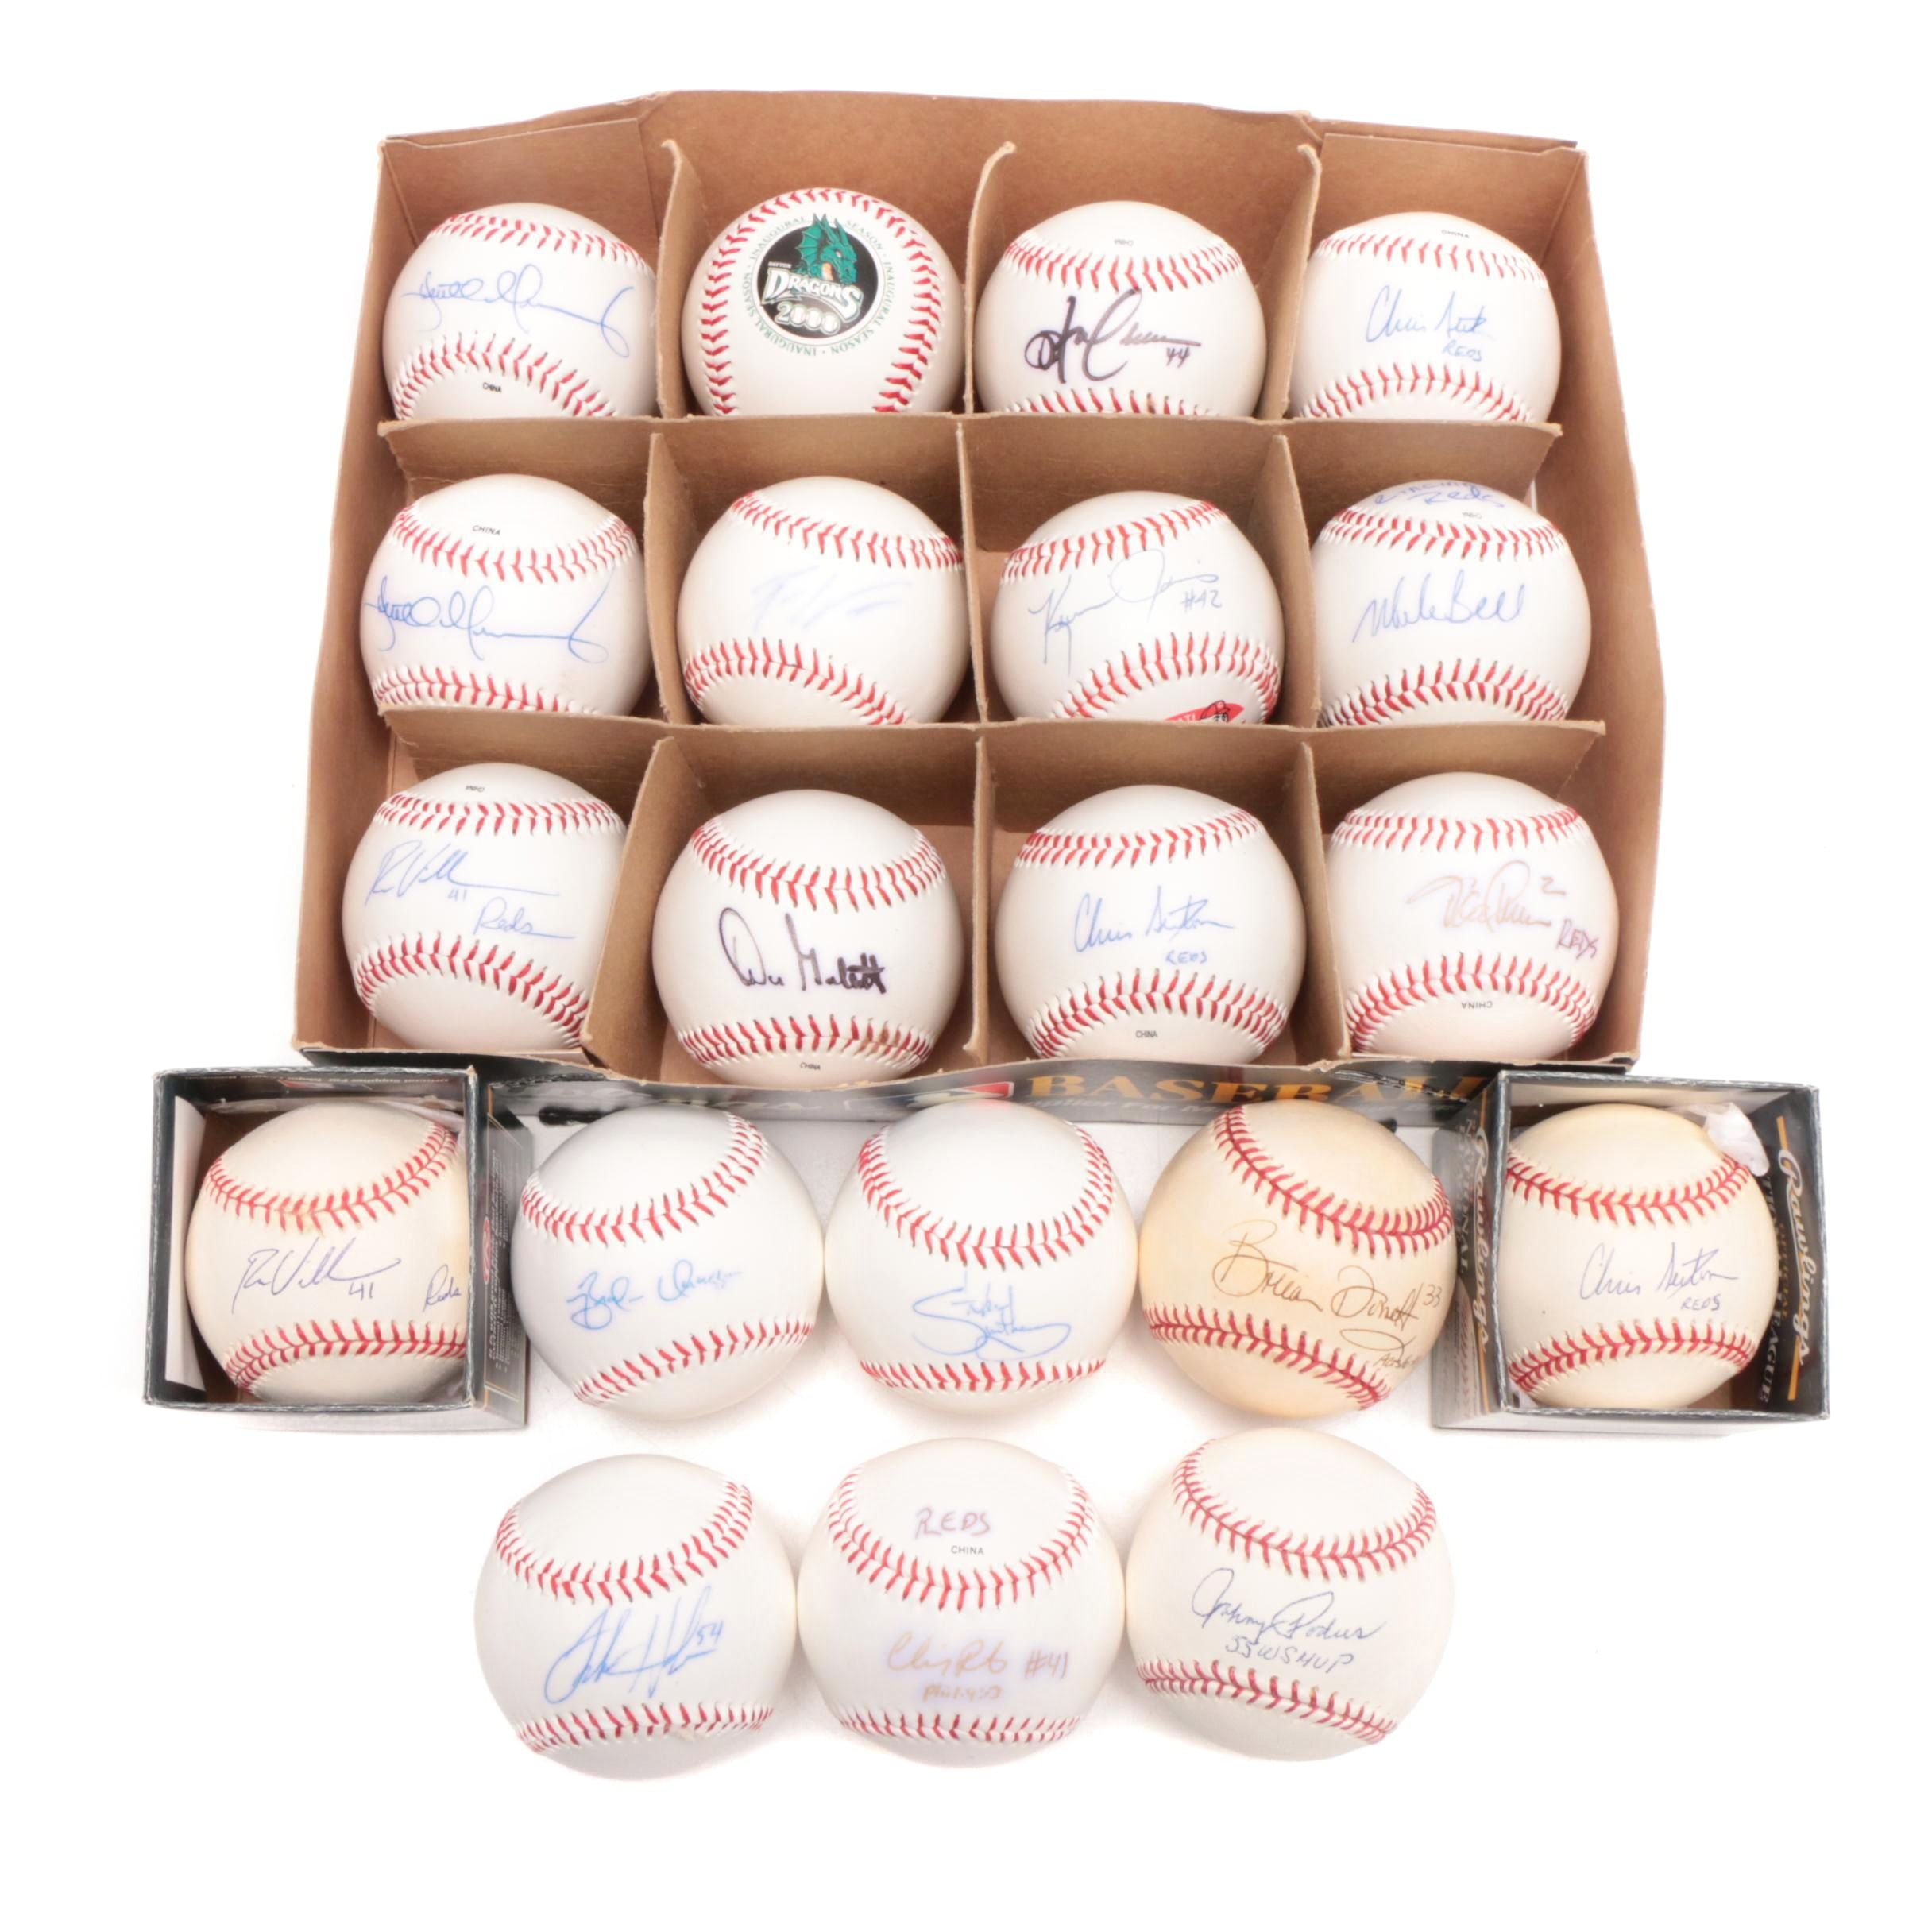 Assorted Signed Baseballs Including Don Gullett and Johnny Podres